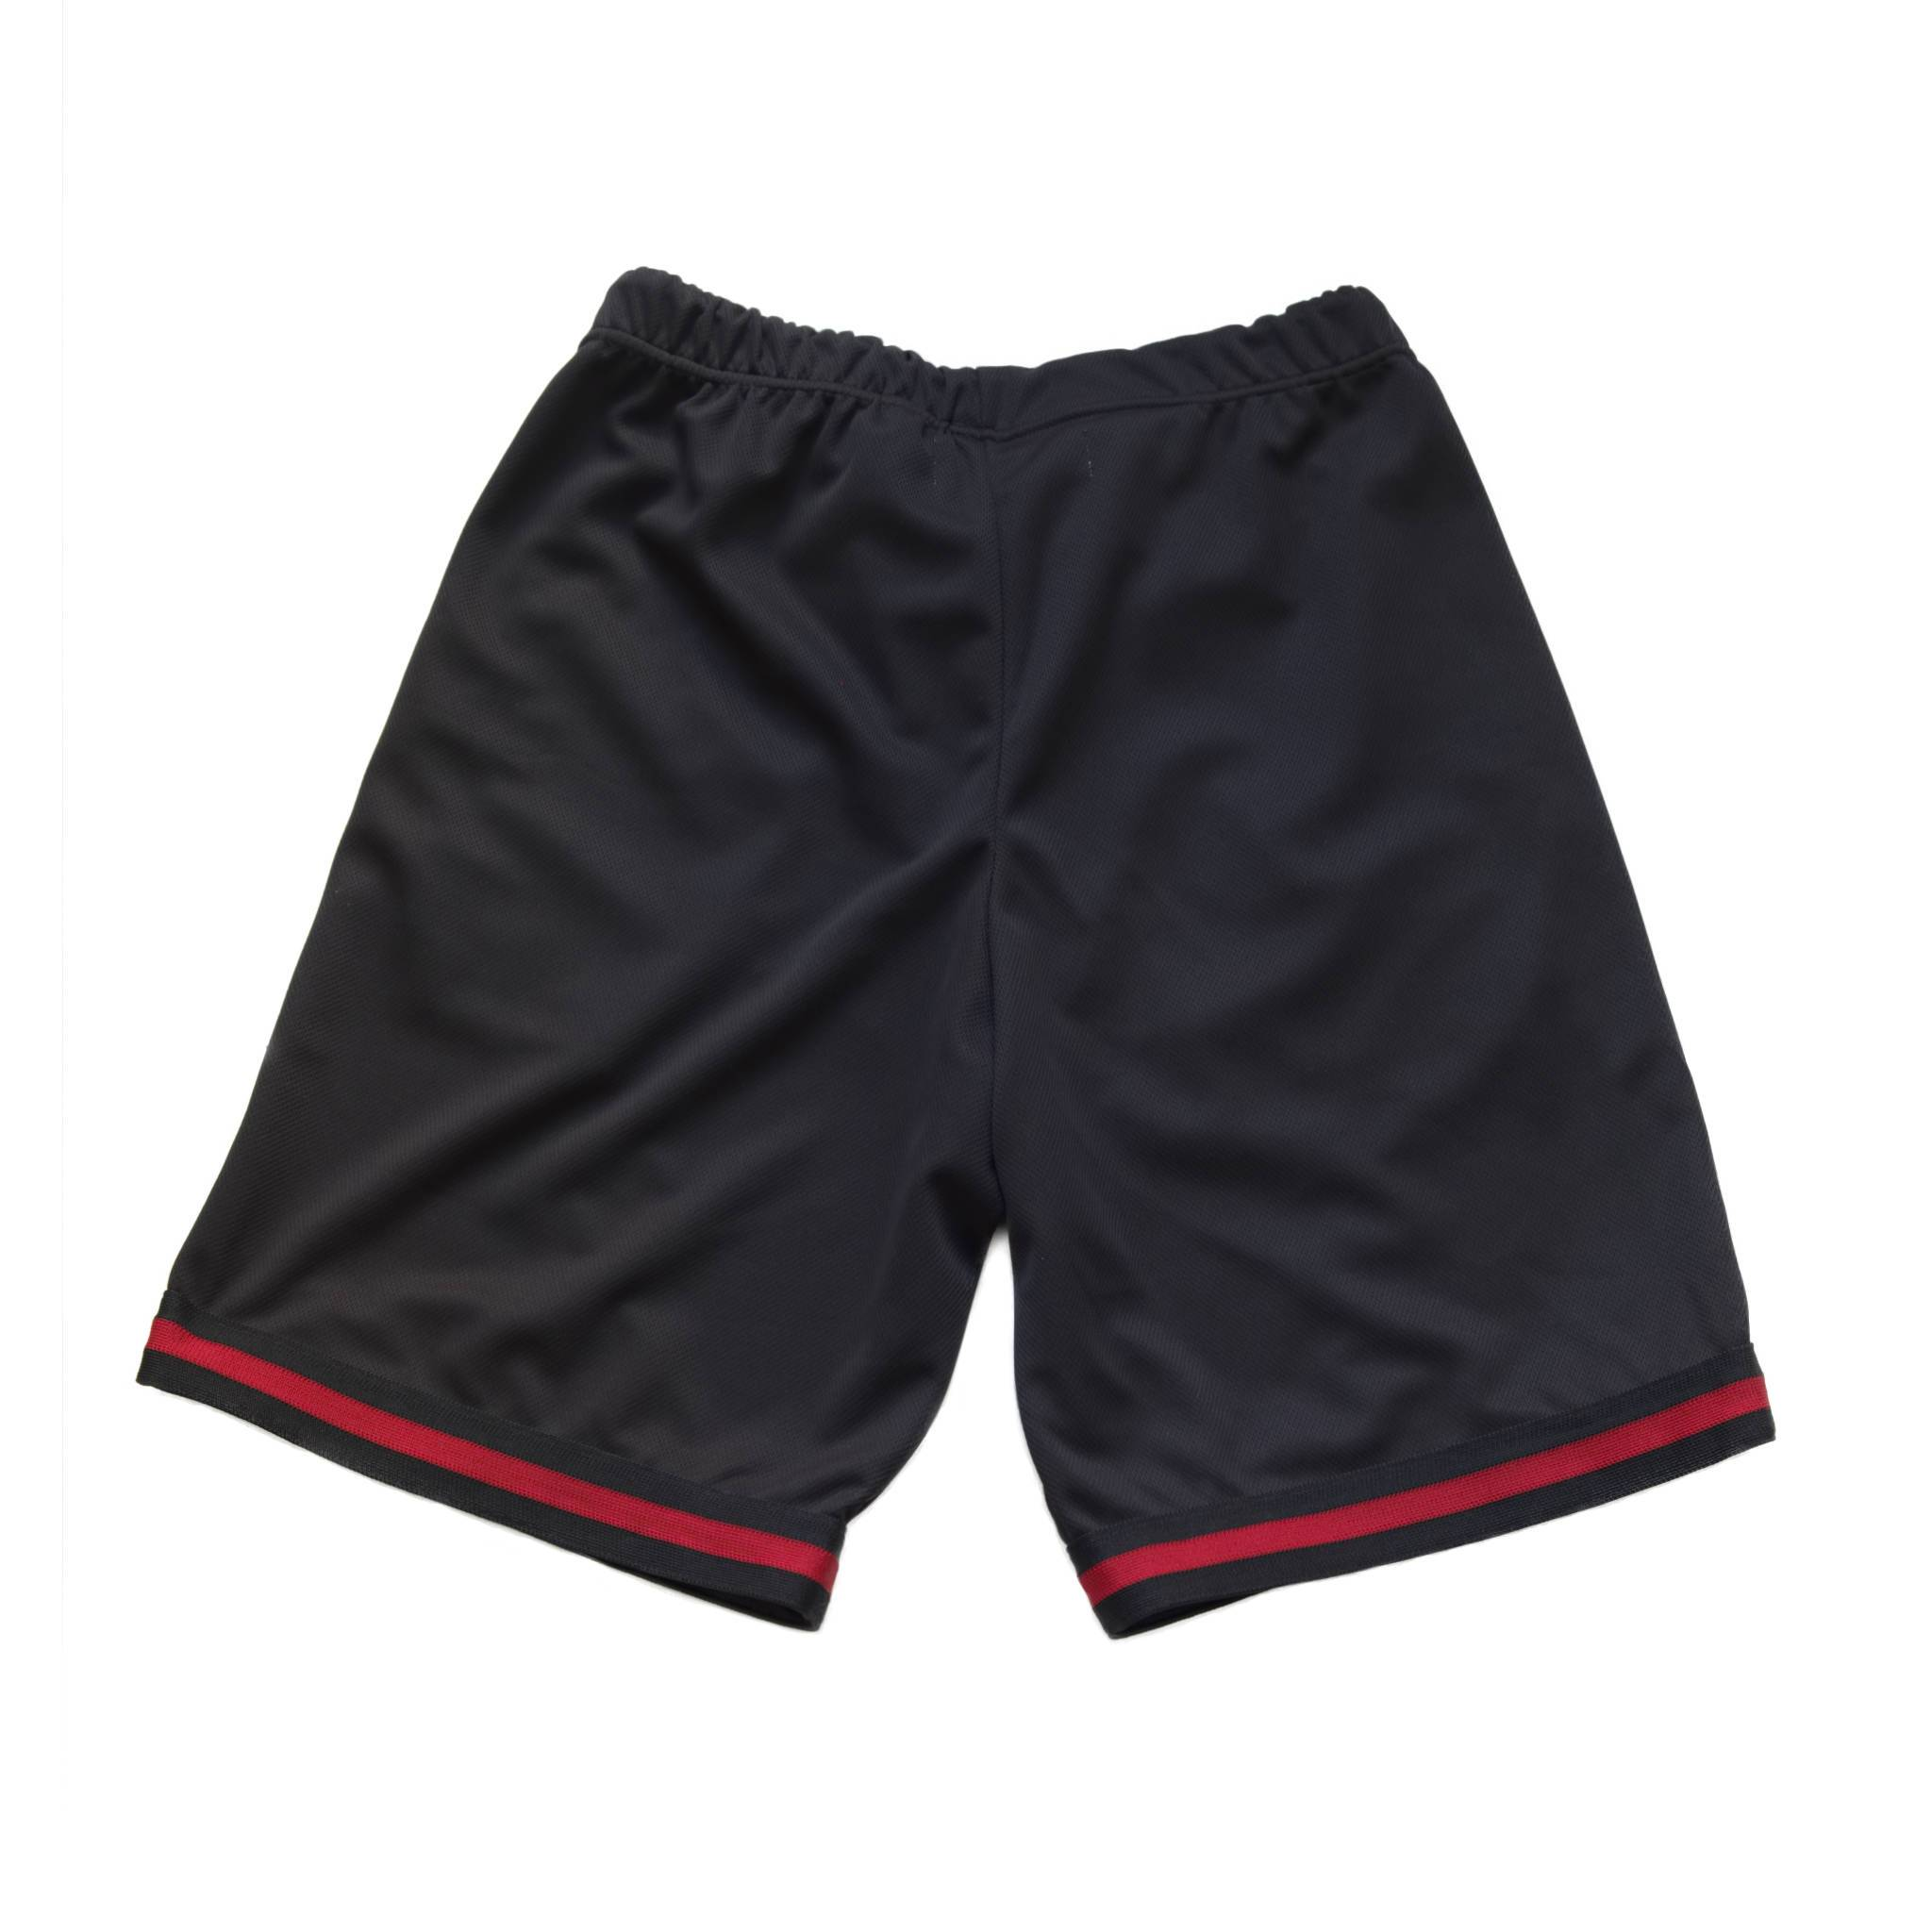 Cogs | After Carter capsule Franchise Shorts Away colourway | 2